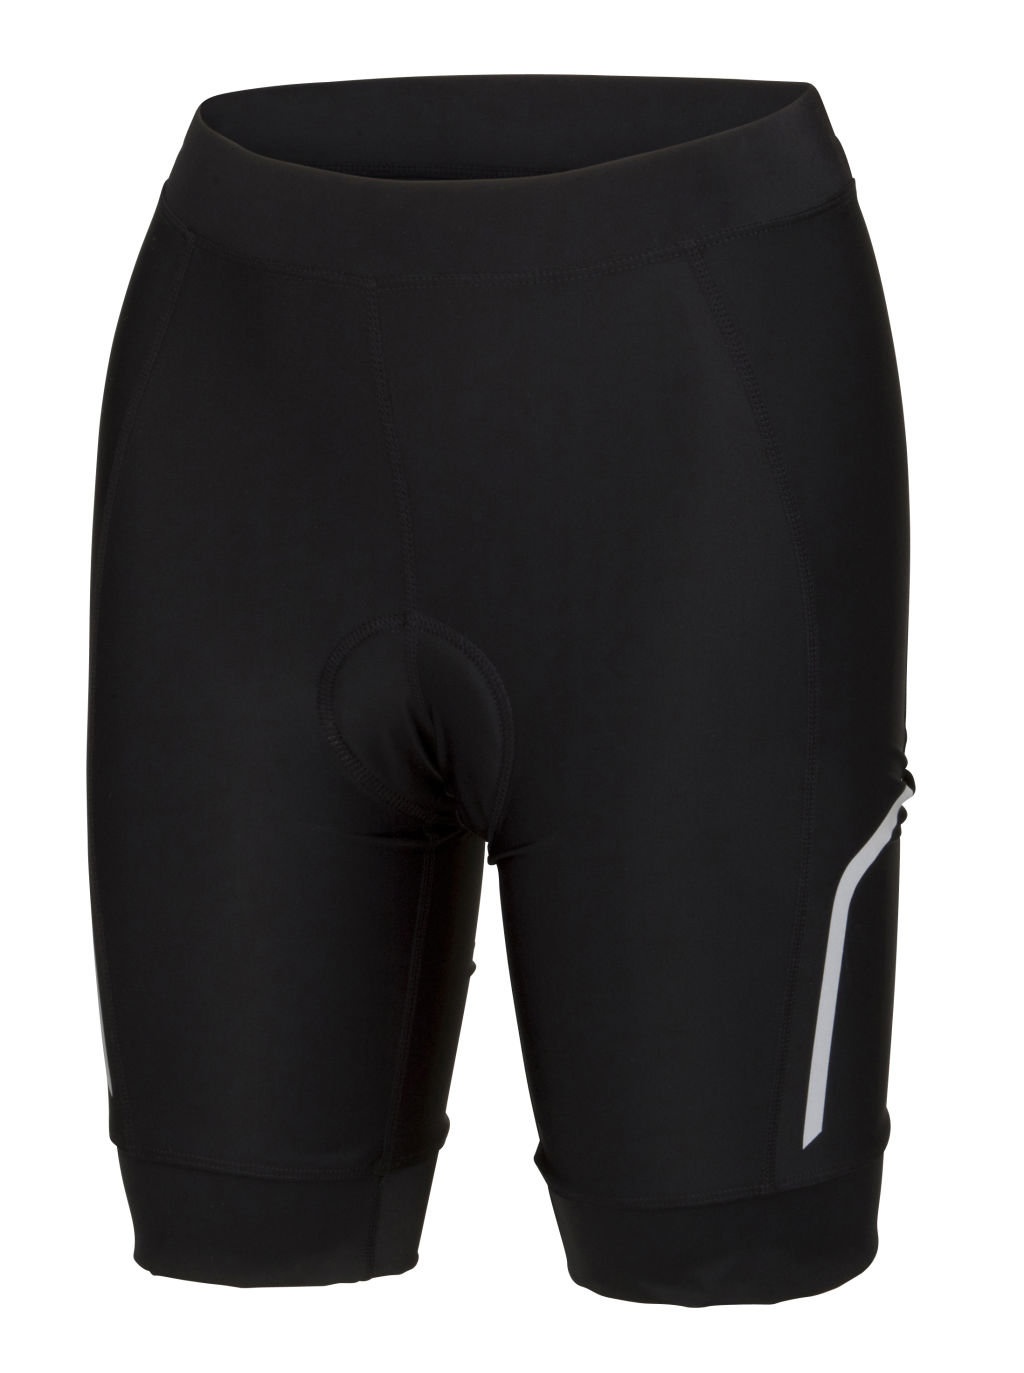 Pro Touch Spin Tight W